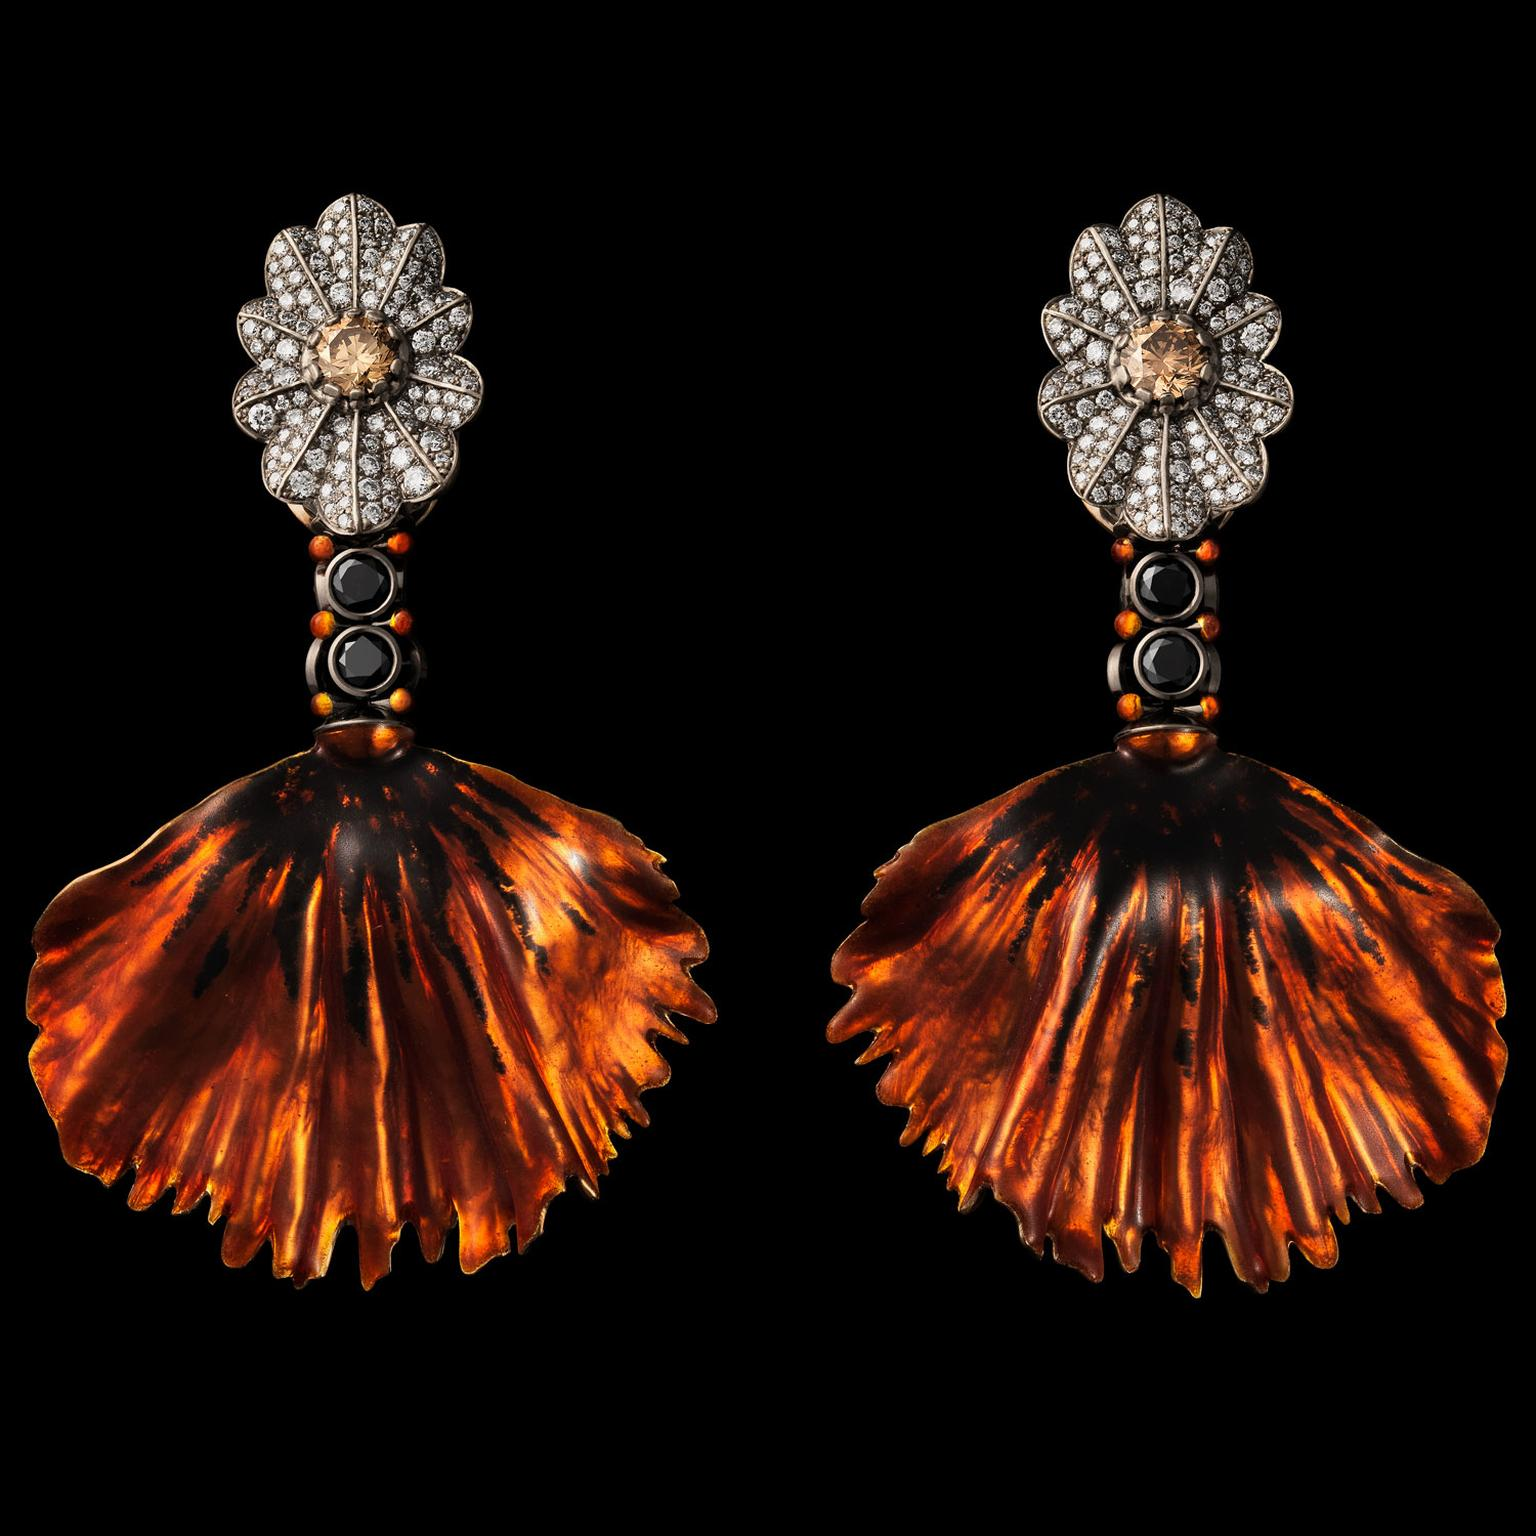 Otto Jakob Bailaora earrings